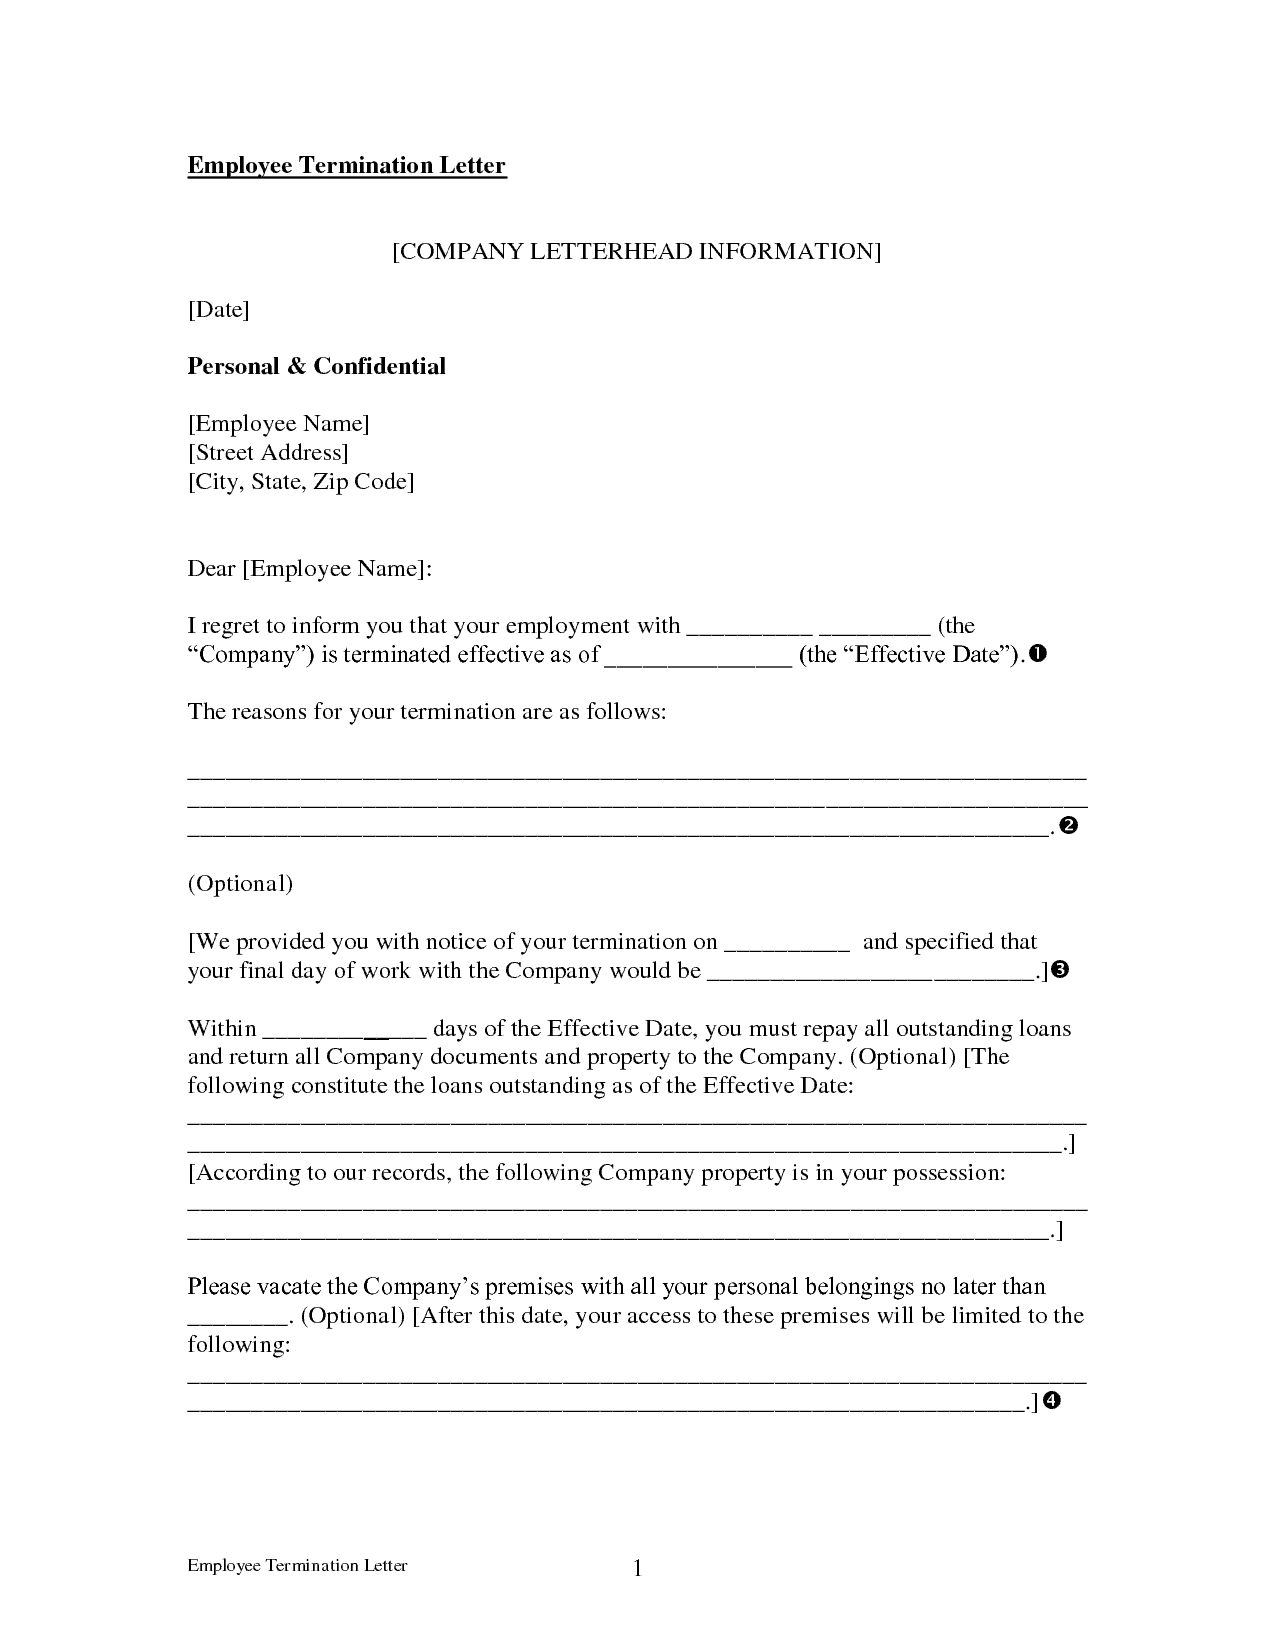 Employee Termination Letter Template Free from www.sampleletterword.com